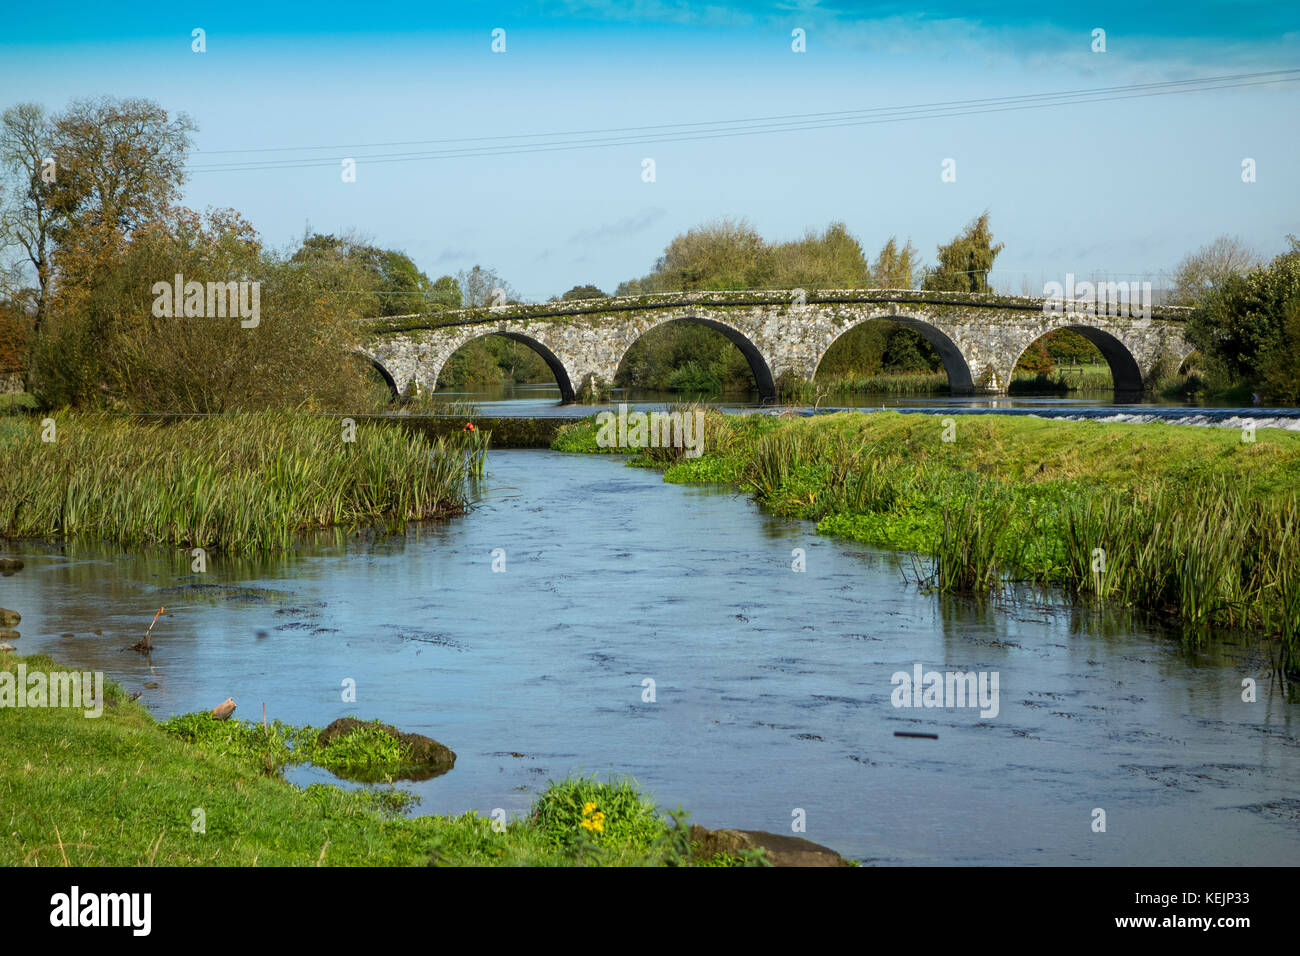 The view towards the bridge over the Nore river at Bennettsbridge, Kilkenny, Ireland from the famed Nicholas Mosse - Stock Image